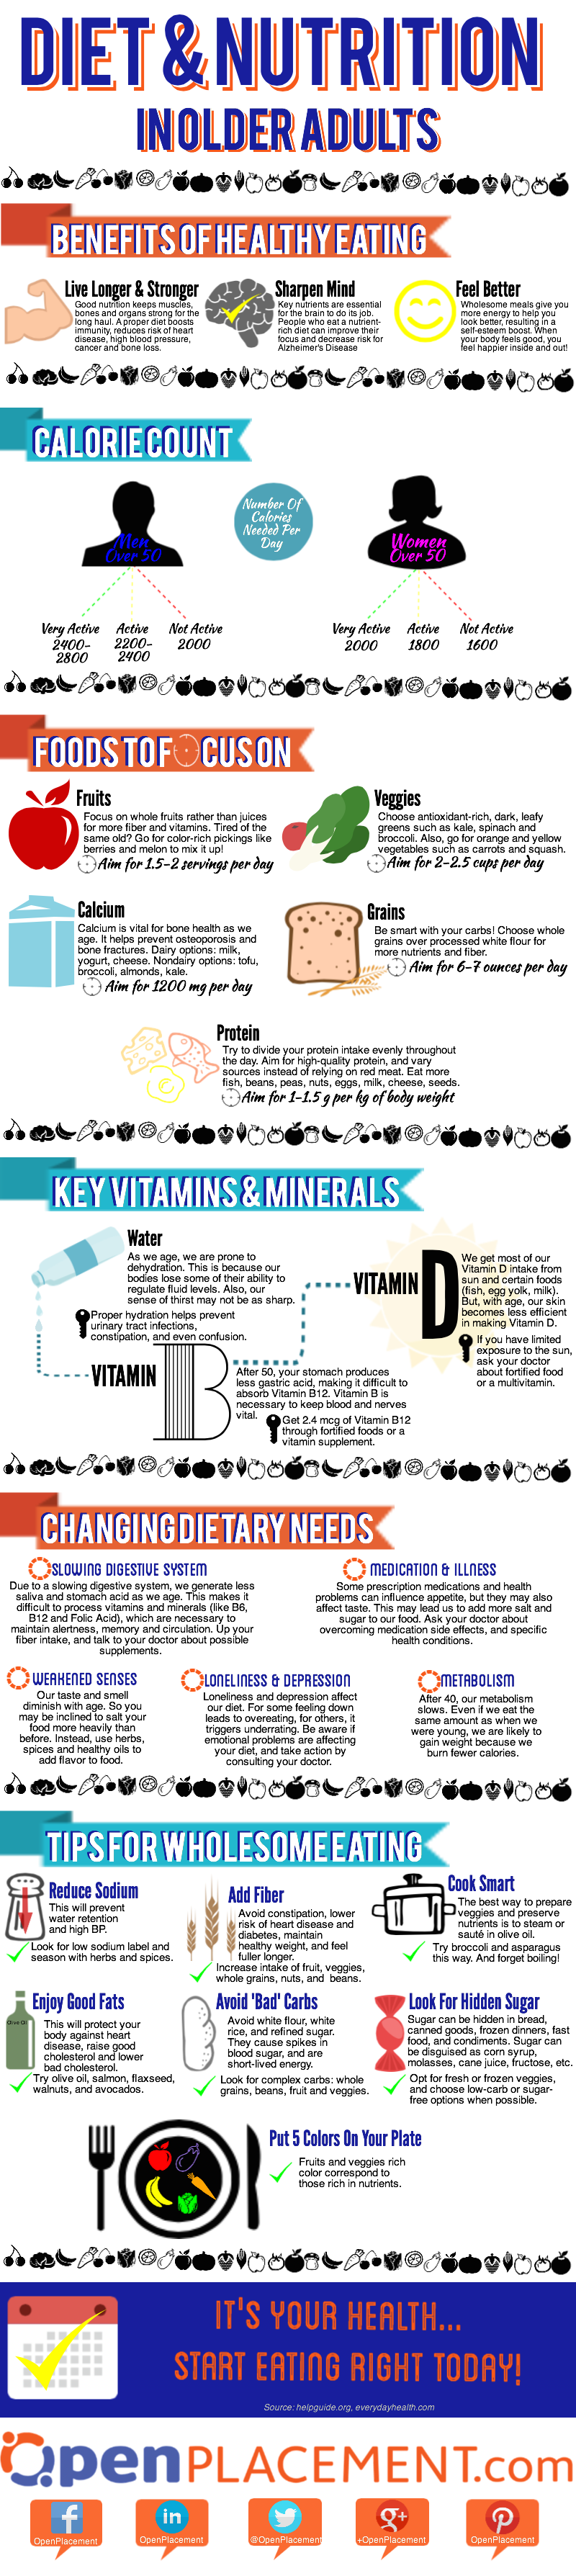 Infographic Diet And Nutrition In The Elderly Seniors Health Diet And Nutrition Natural Cure For Arthritis Arthritis Remedies